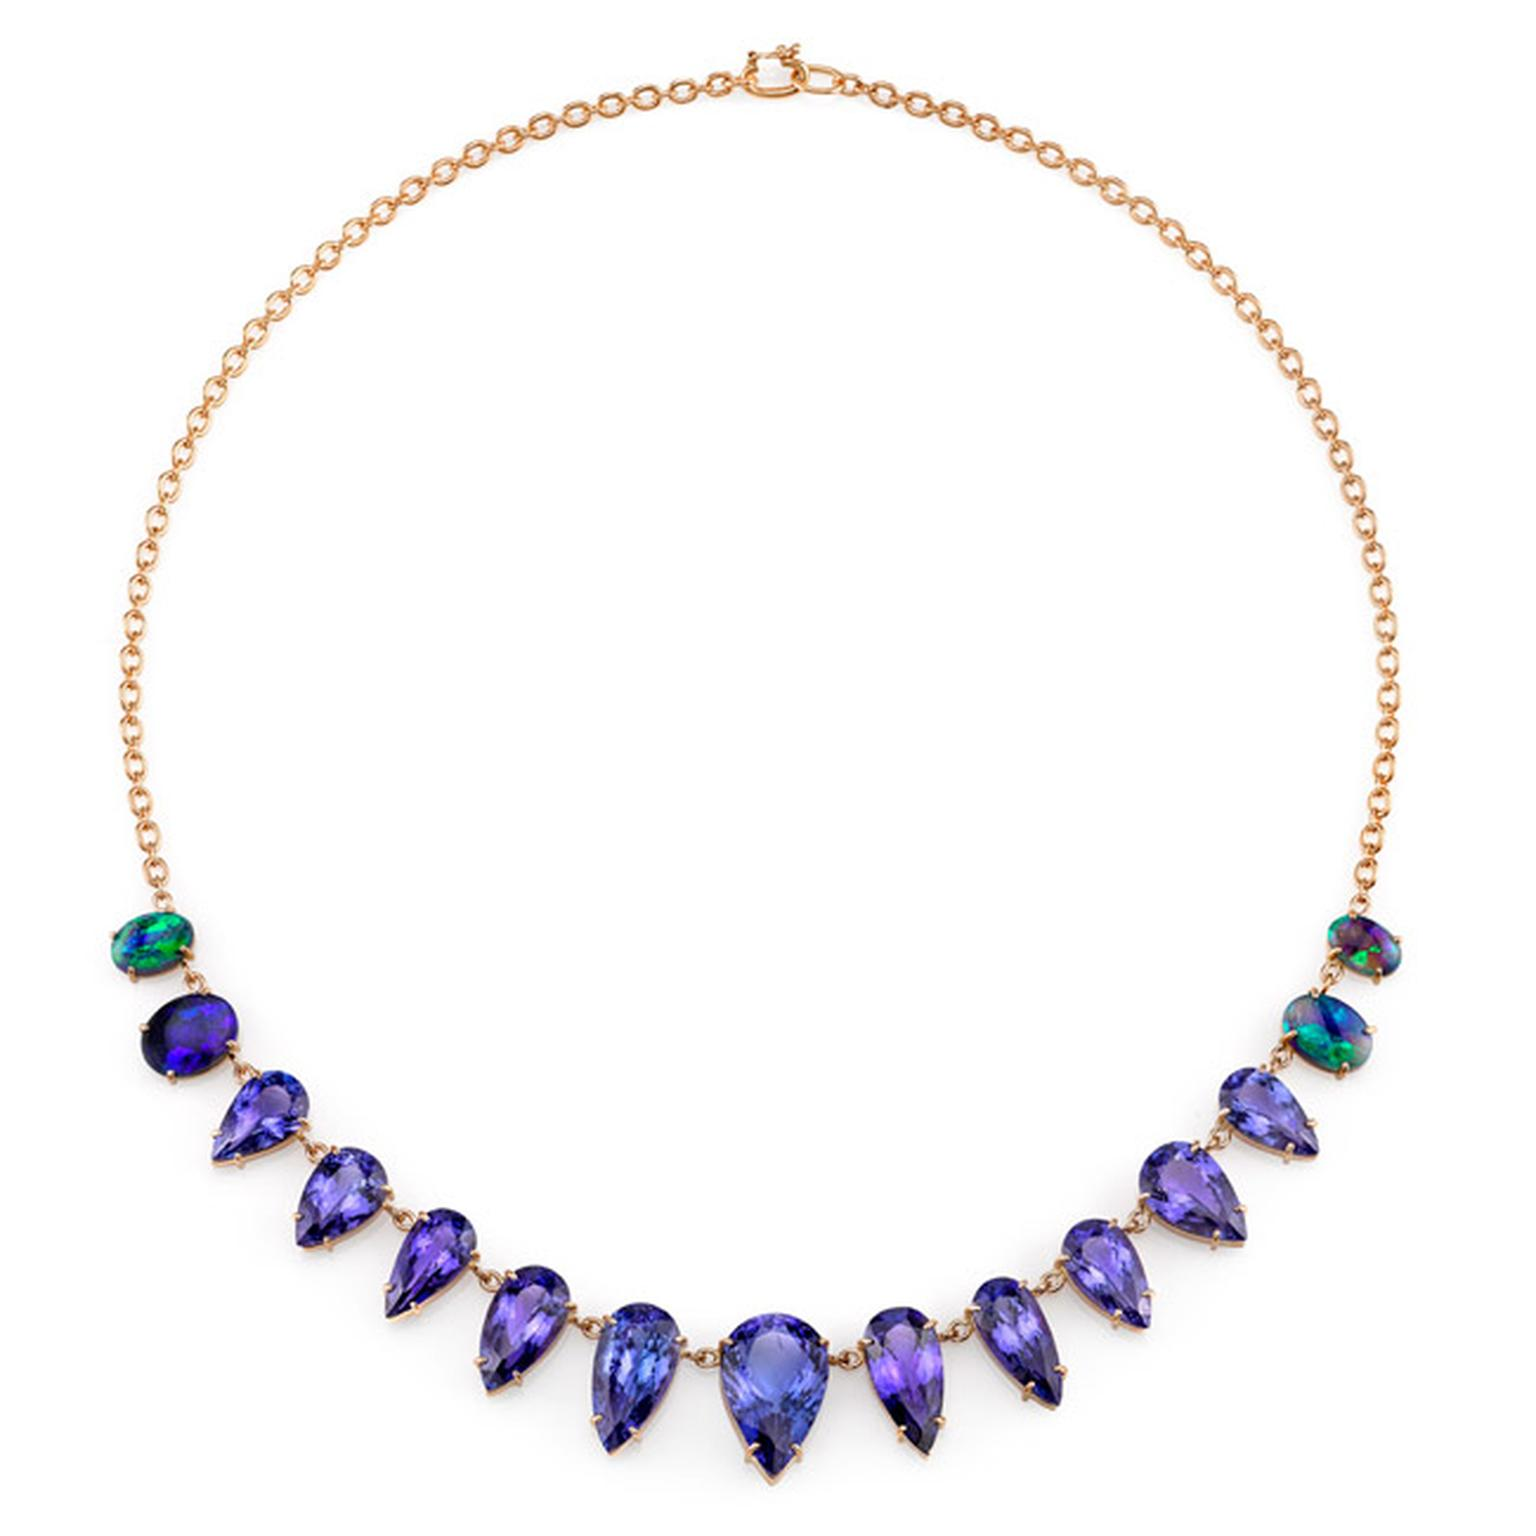 Irene-Neuwrith-Tanzanite-Necklace-Main